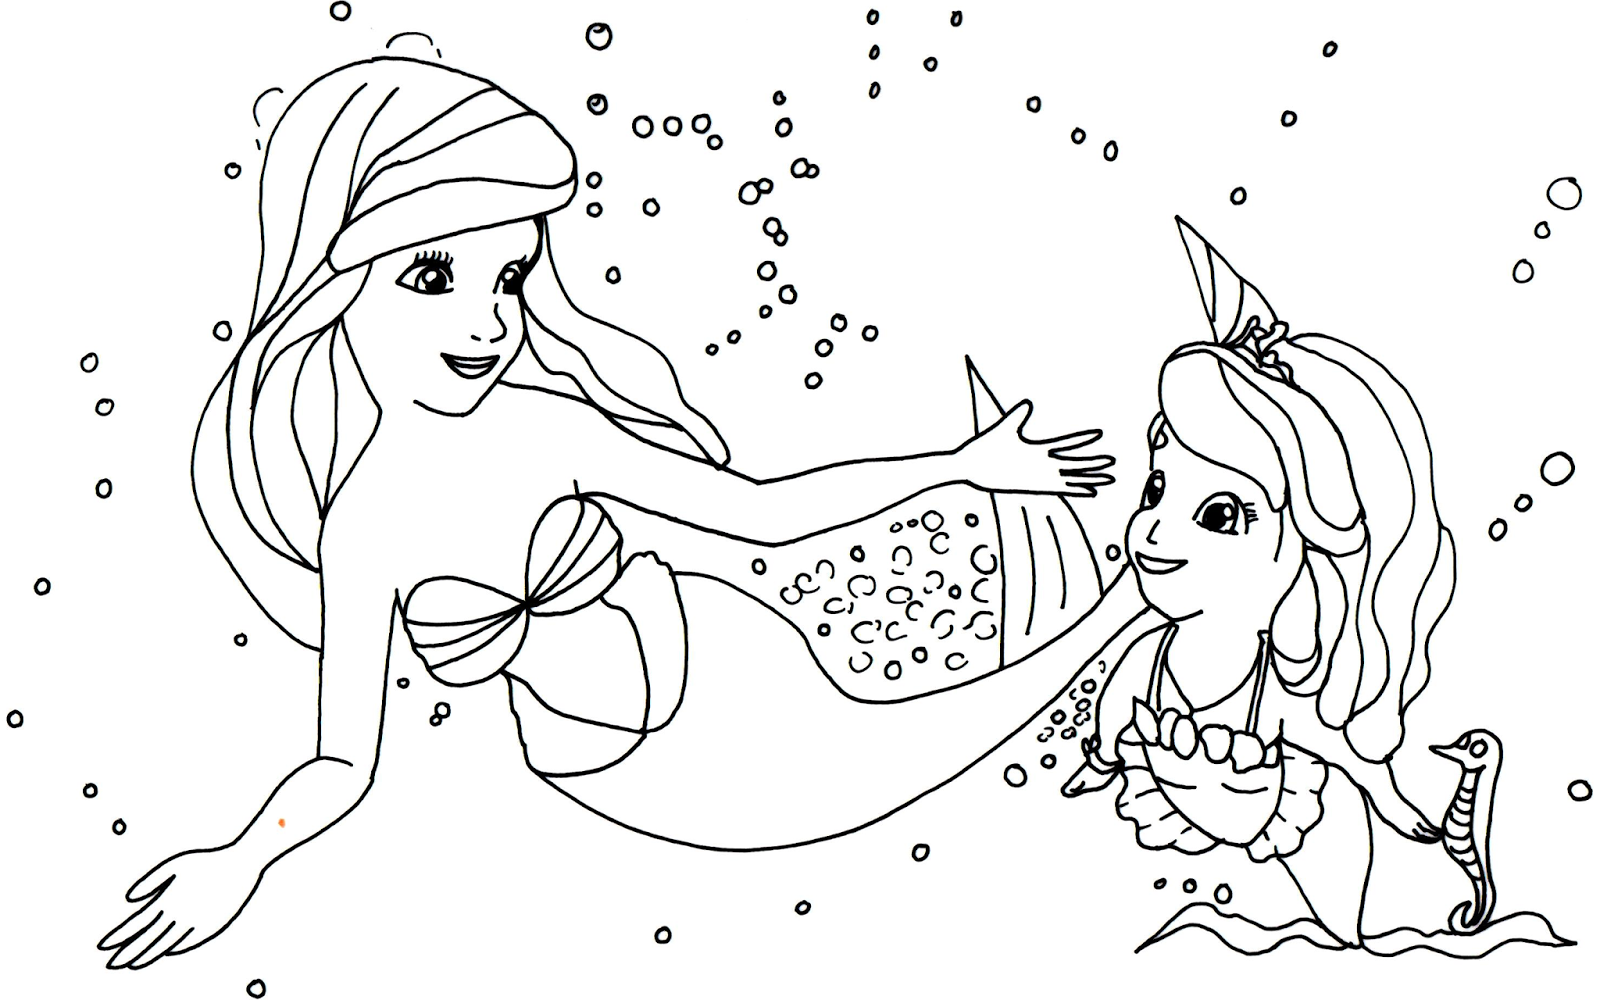 sofia the first coloring pages march 2014 Disney Princess Coloring Pages  Princess Sofia Coloring Book